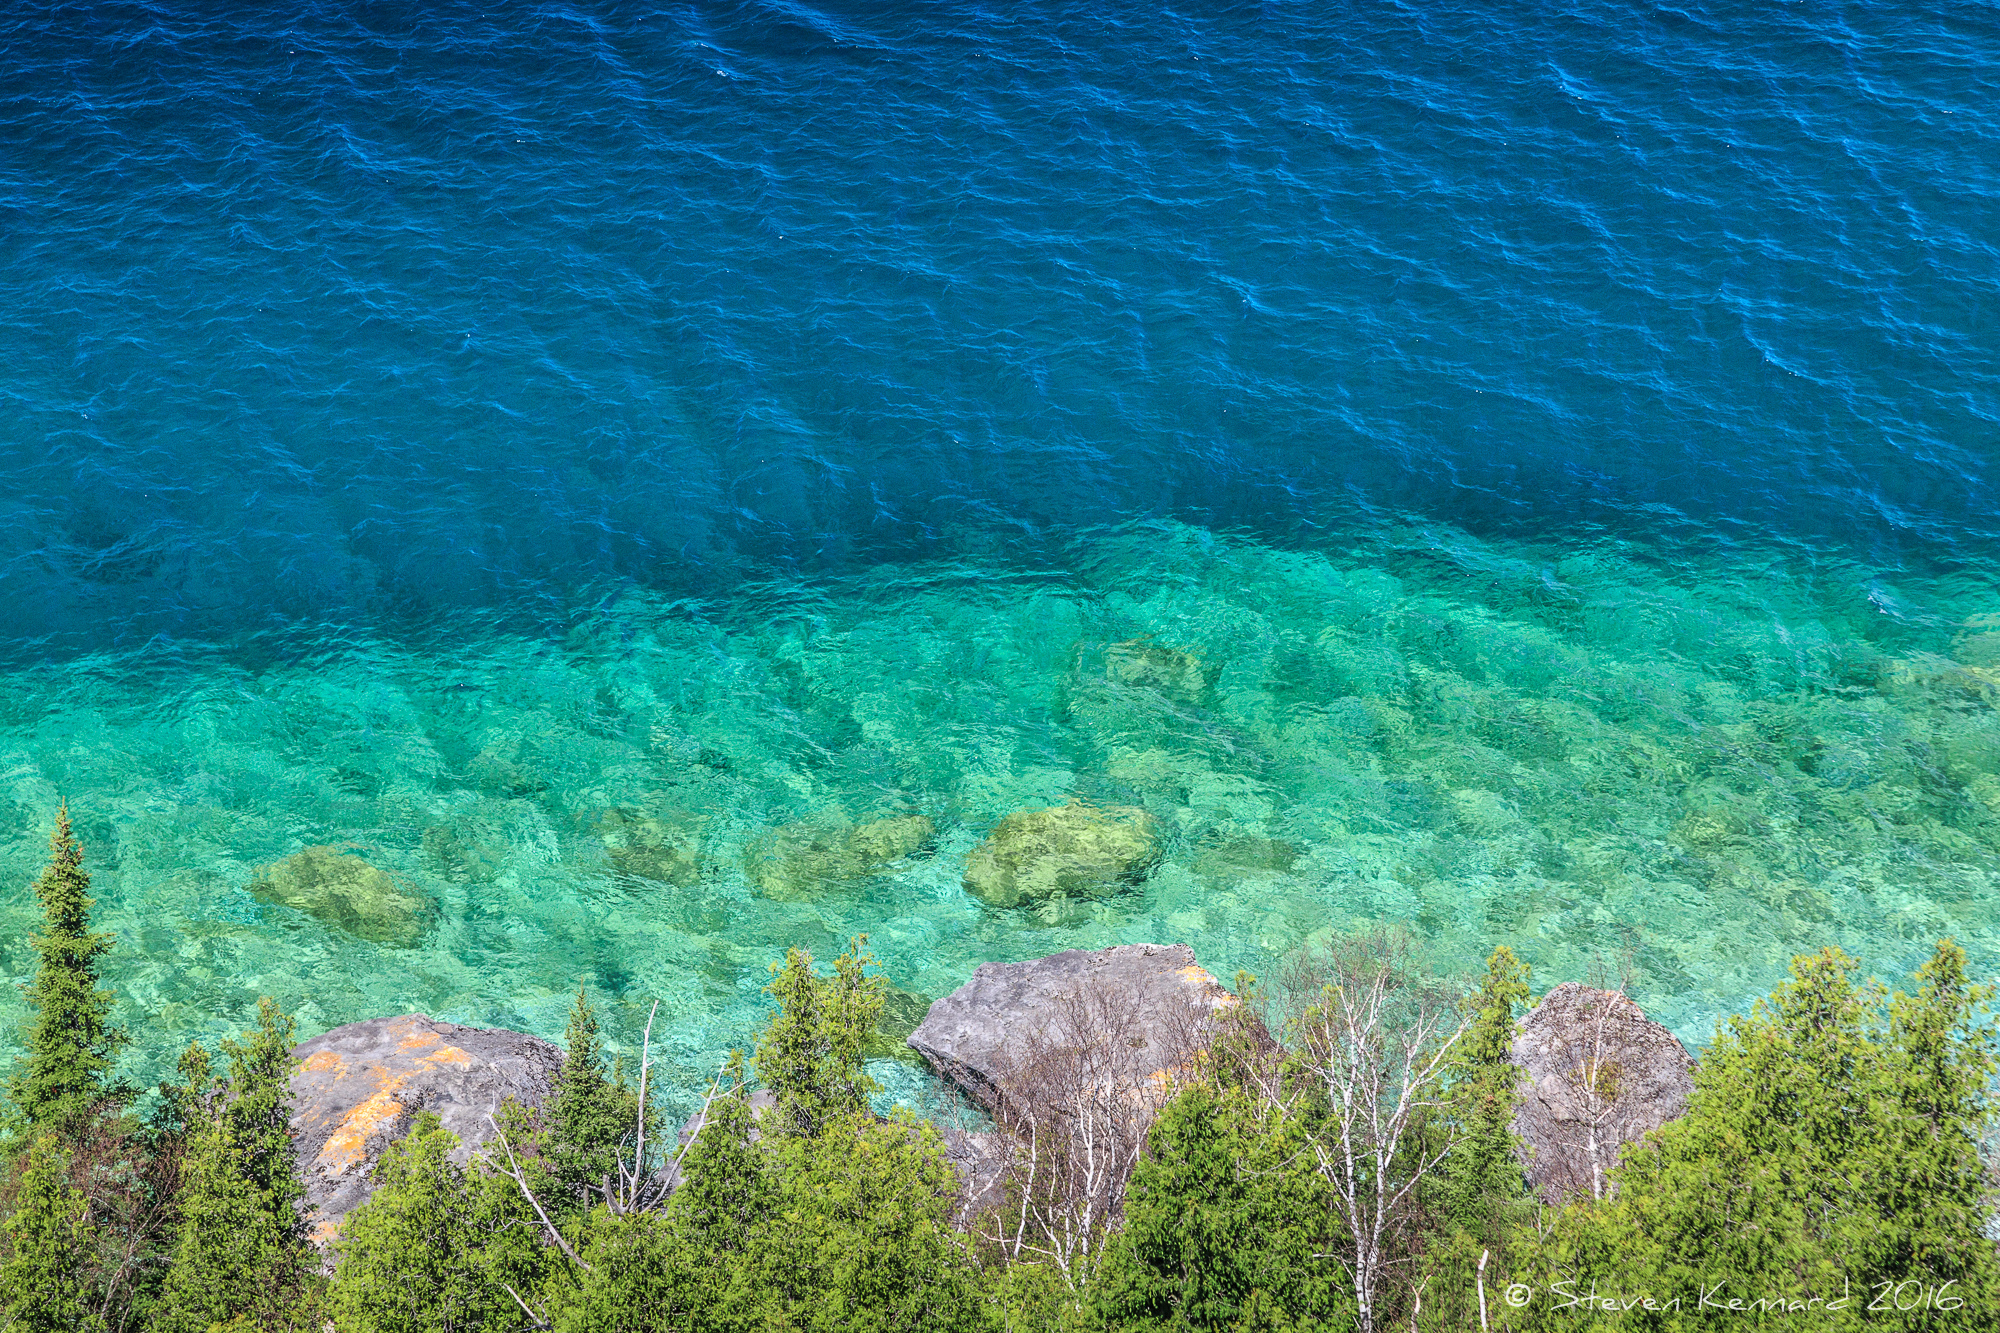 The view of Georgian Bay from the top of Lion's Head – Steven Kennard 2016